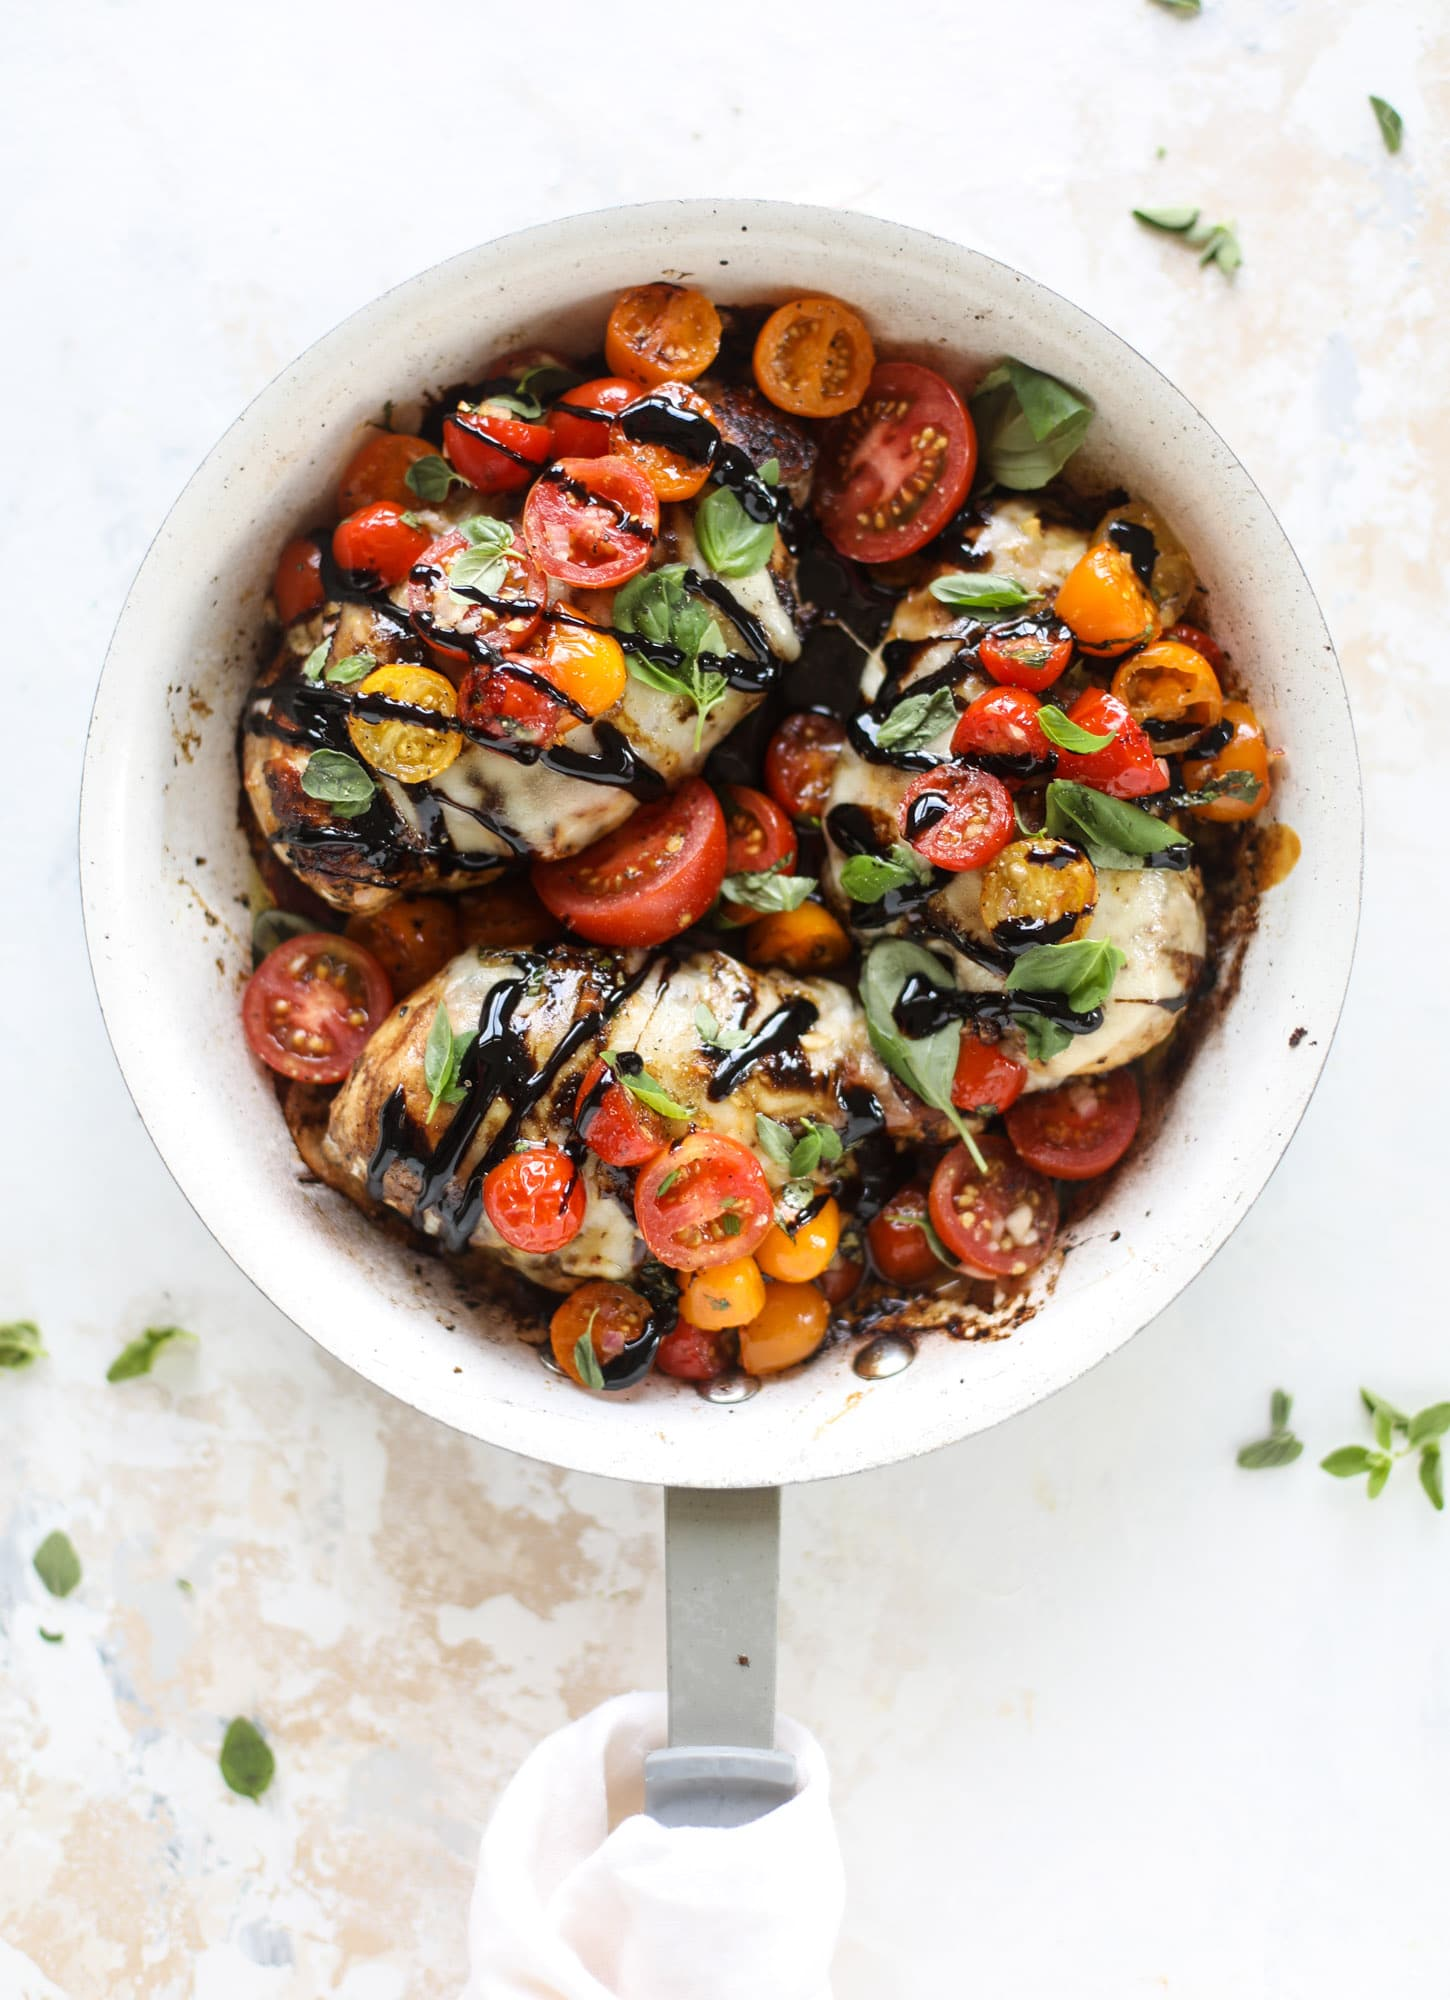 This bruschetta chicken is the perfect summer garden meal! Juicy, flavorful chicken topped with fresh tomatoes, garlic, basil and balsamic glaze, along with a touch of cheese. Served with pasta, it's an incredible meal. I howsweeteats.com #bruschetta #chicken #pasta #tomatoes #basil